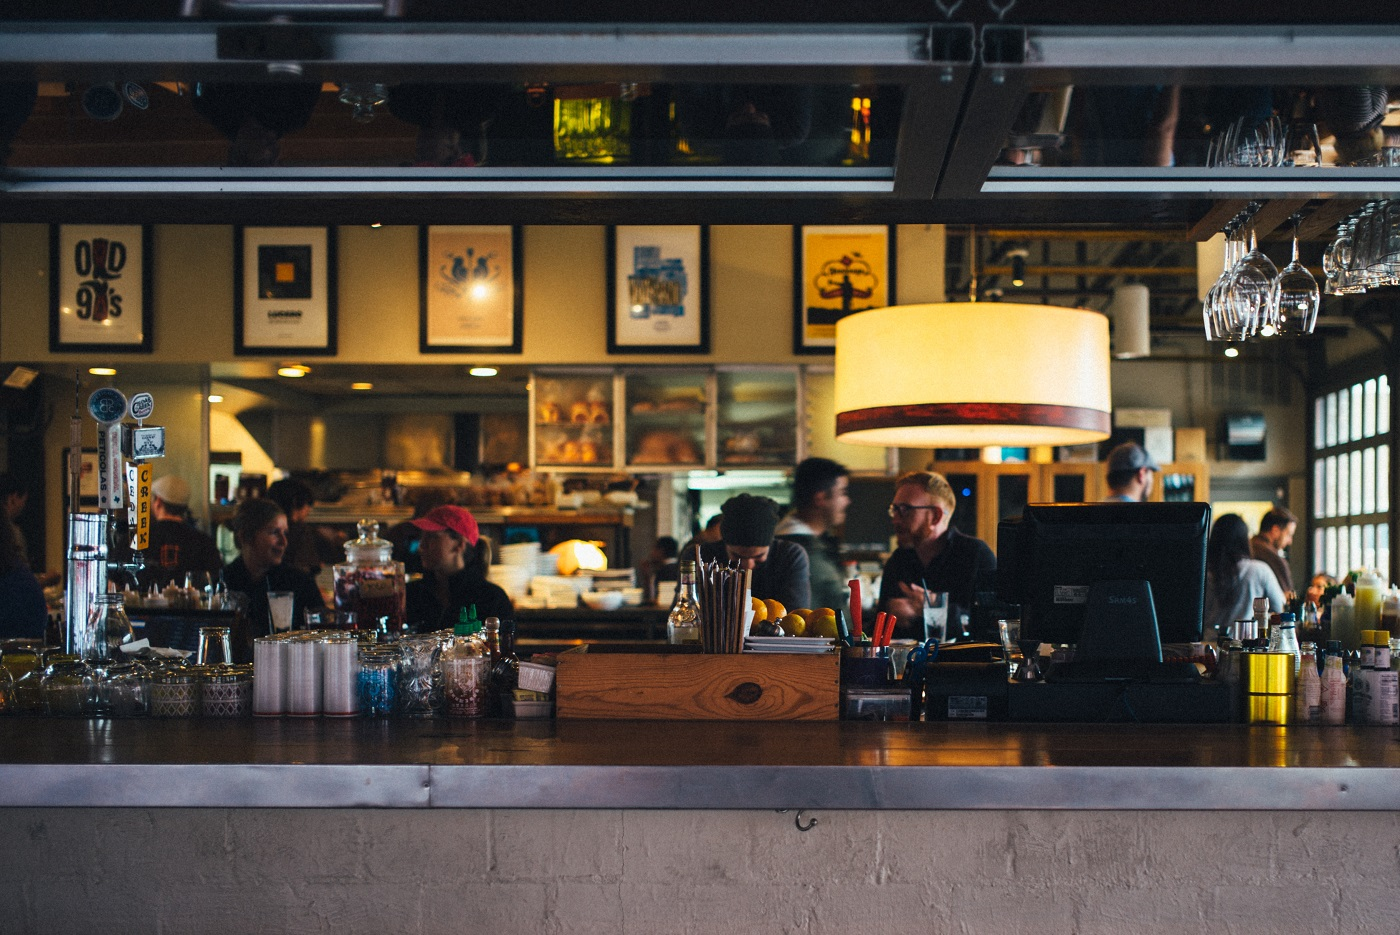 Where to eat in Perth, Perth restaurants, best restaurants in Perth, top Perth restaurants